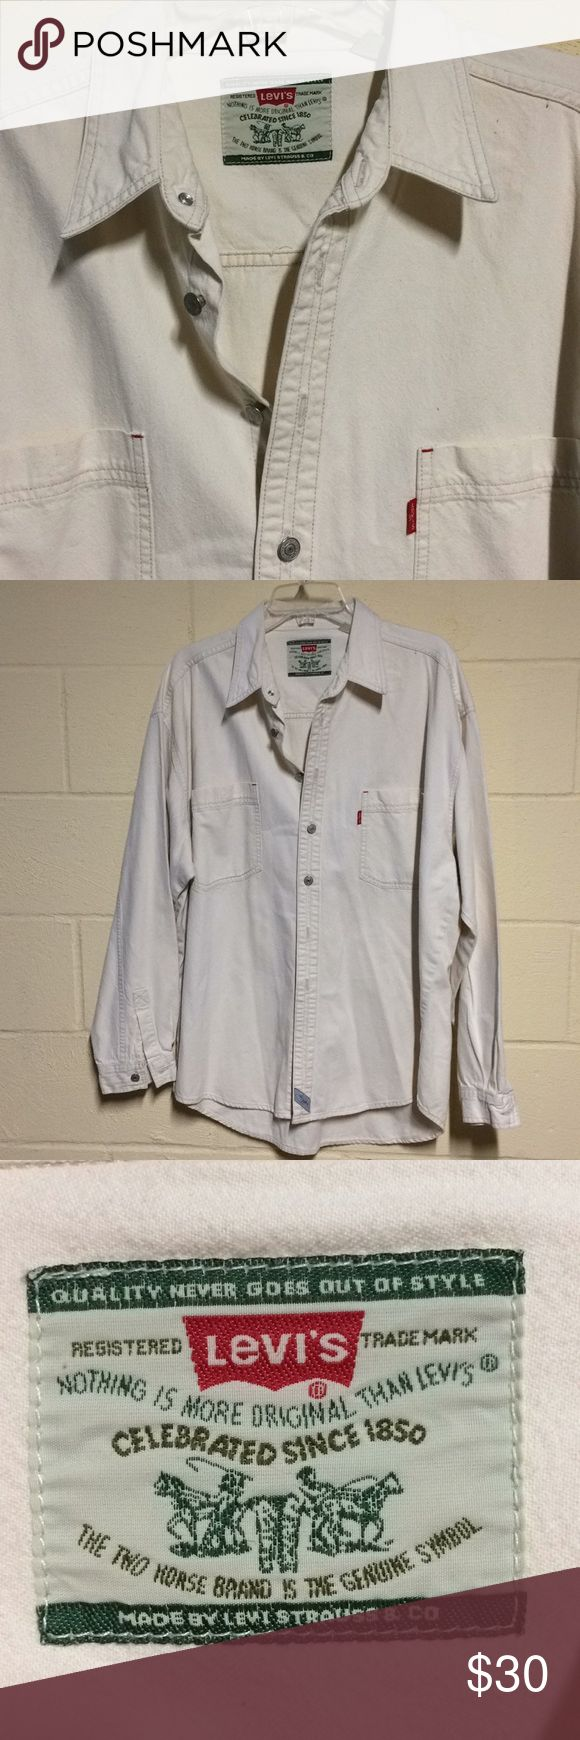 Levi's original button up cream shirt size XL Levi's men's button up cream shirt. 100% cotton. In great shape with normal wear. Size is XL. Has all original buttons and original tags. Authentic Levi Strauss. Levi's Shirts Casual Button Down Shirts